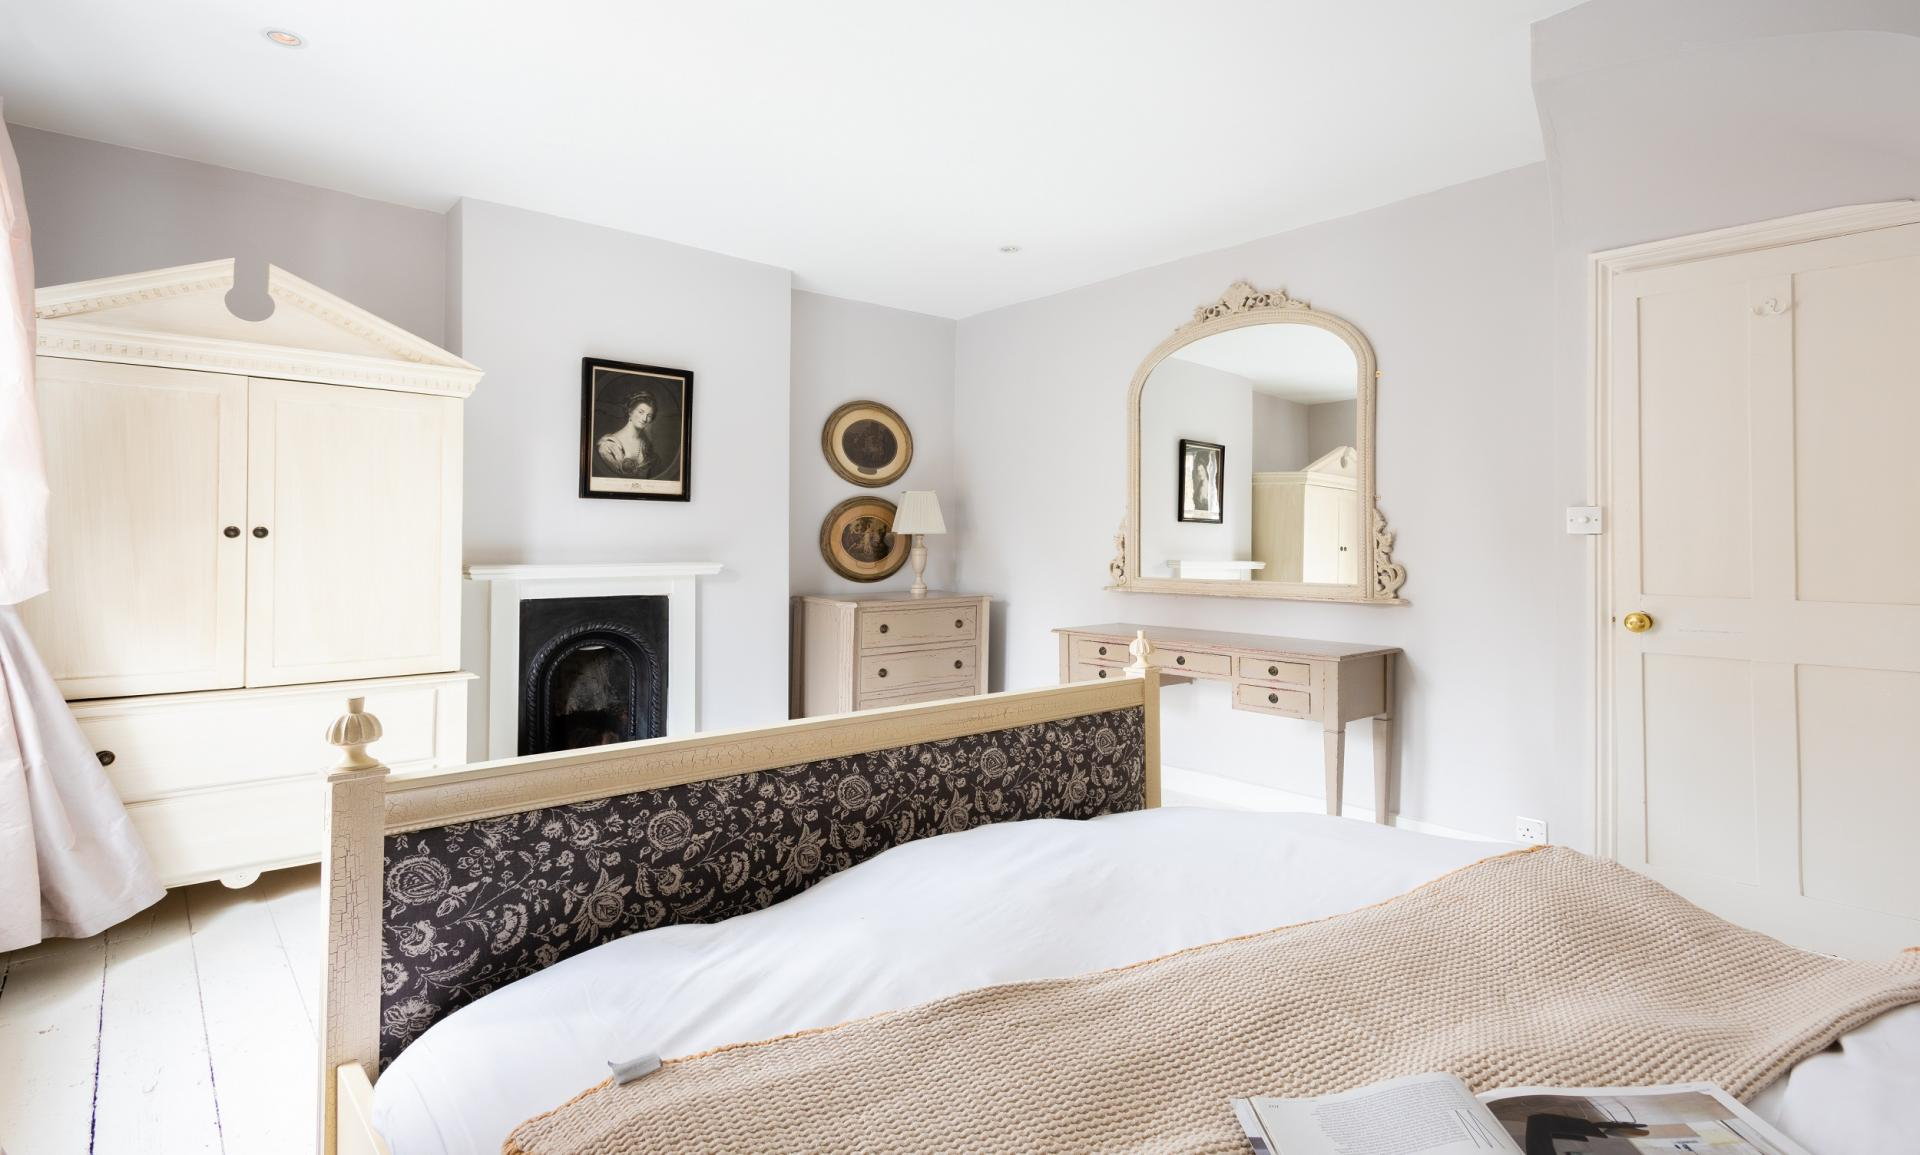 Bedroom at The Writer's Townhouse, Centre, Oxford - Citybase Apartments